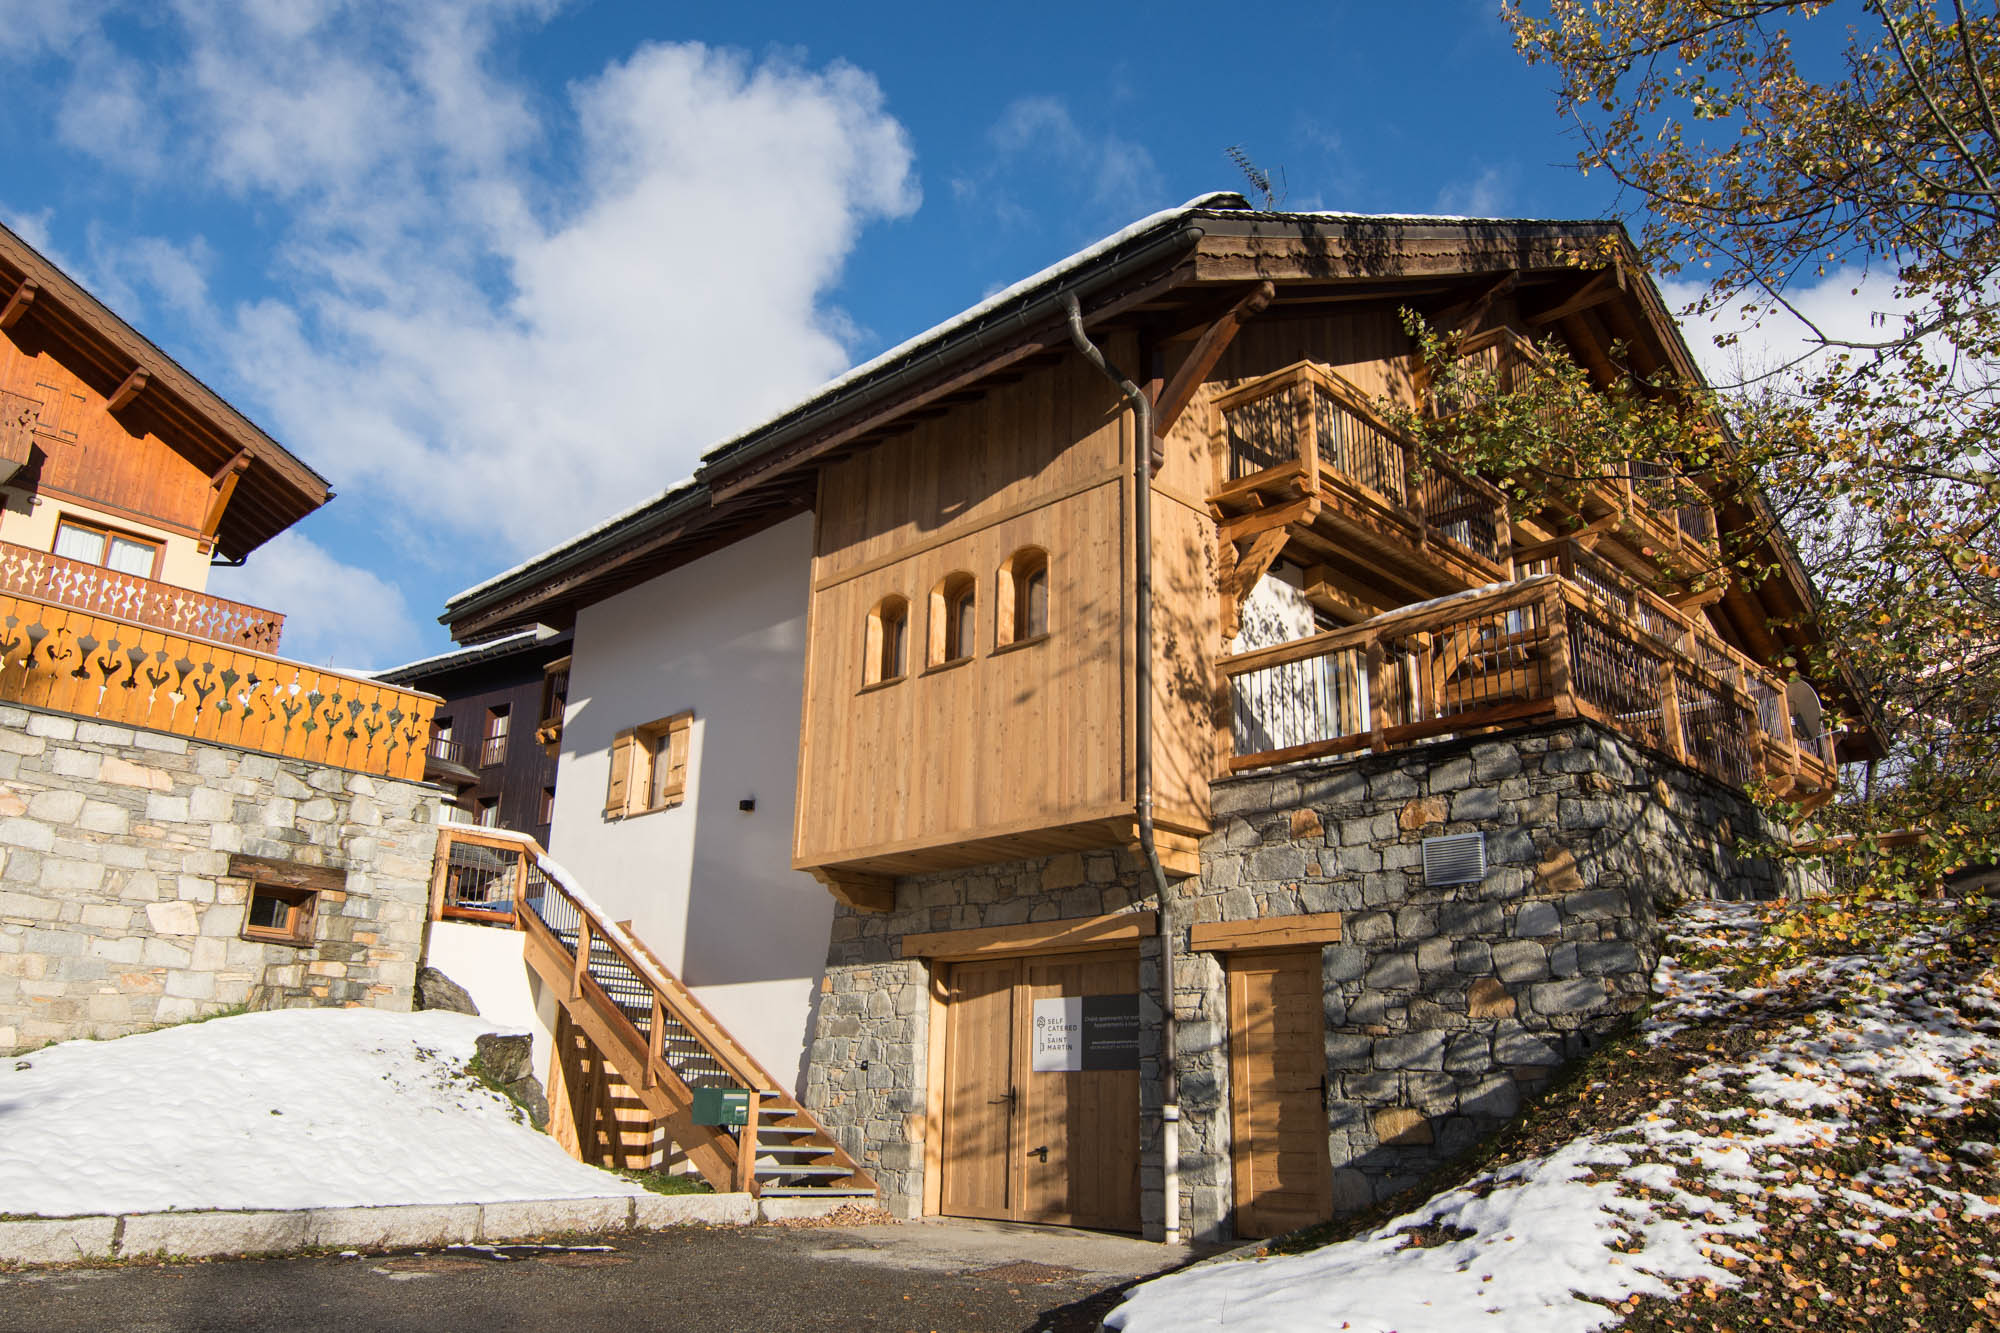 Chalet Fruitiere, located next to the main gondola in St Martin de Belleville